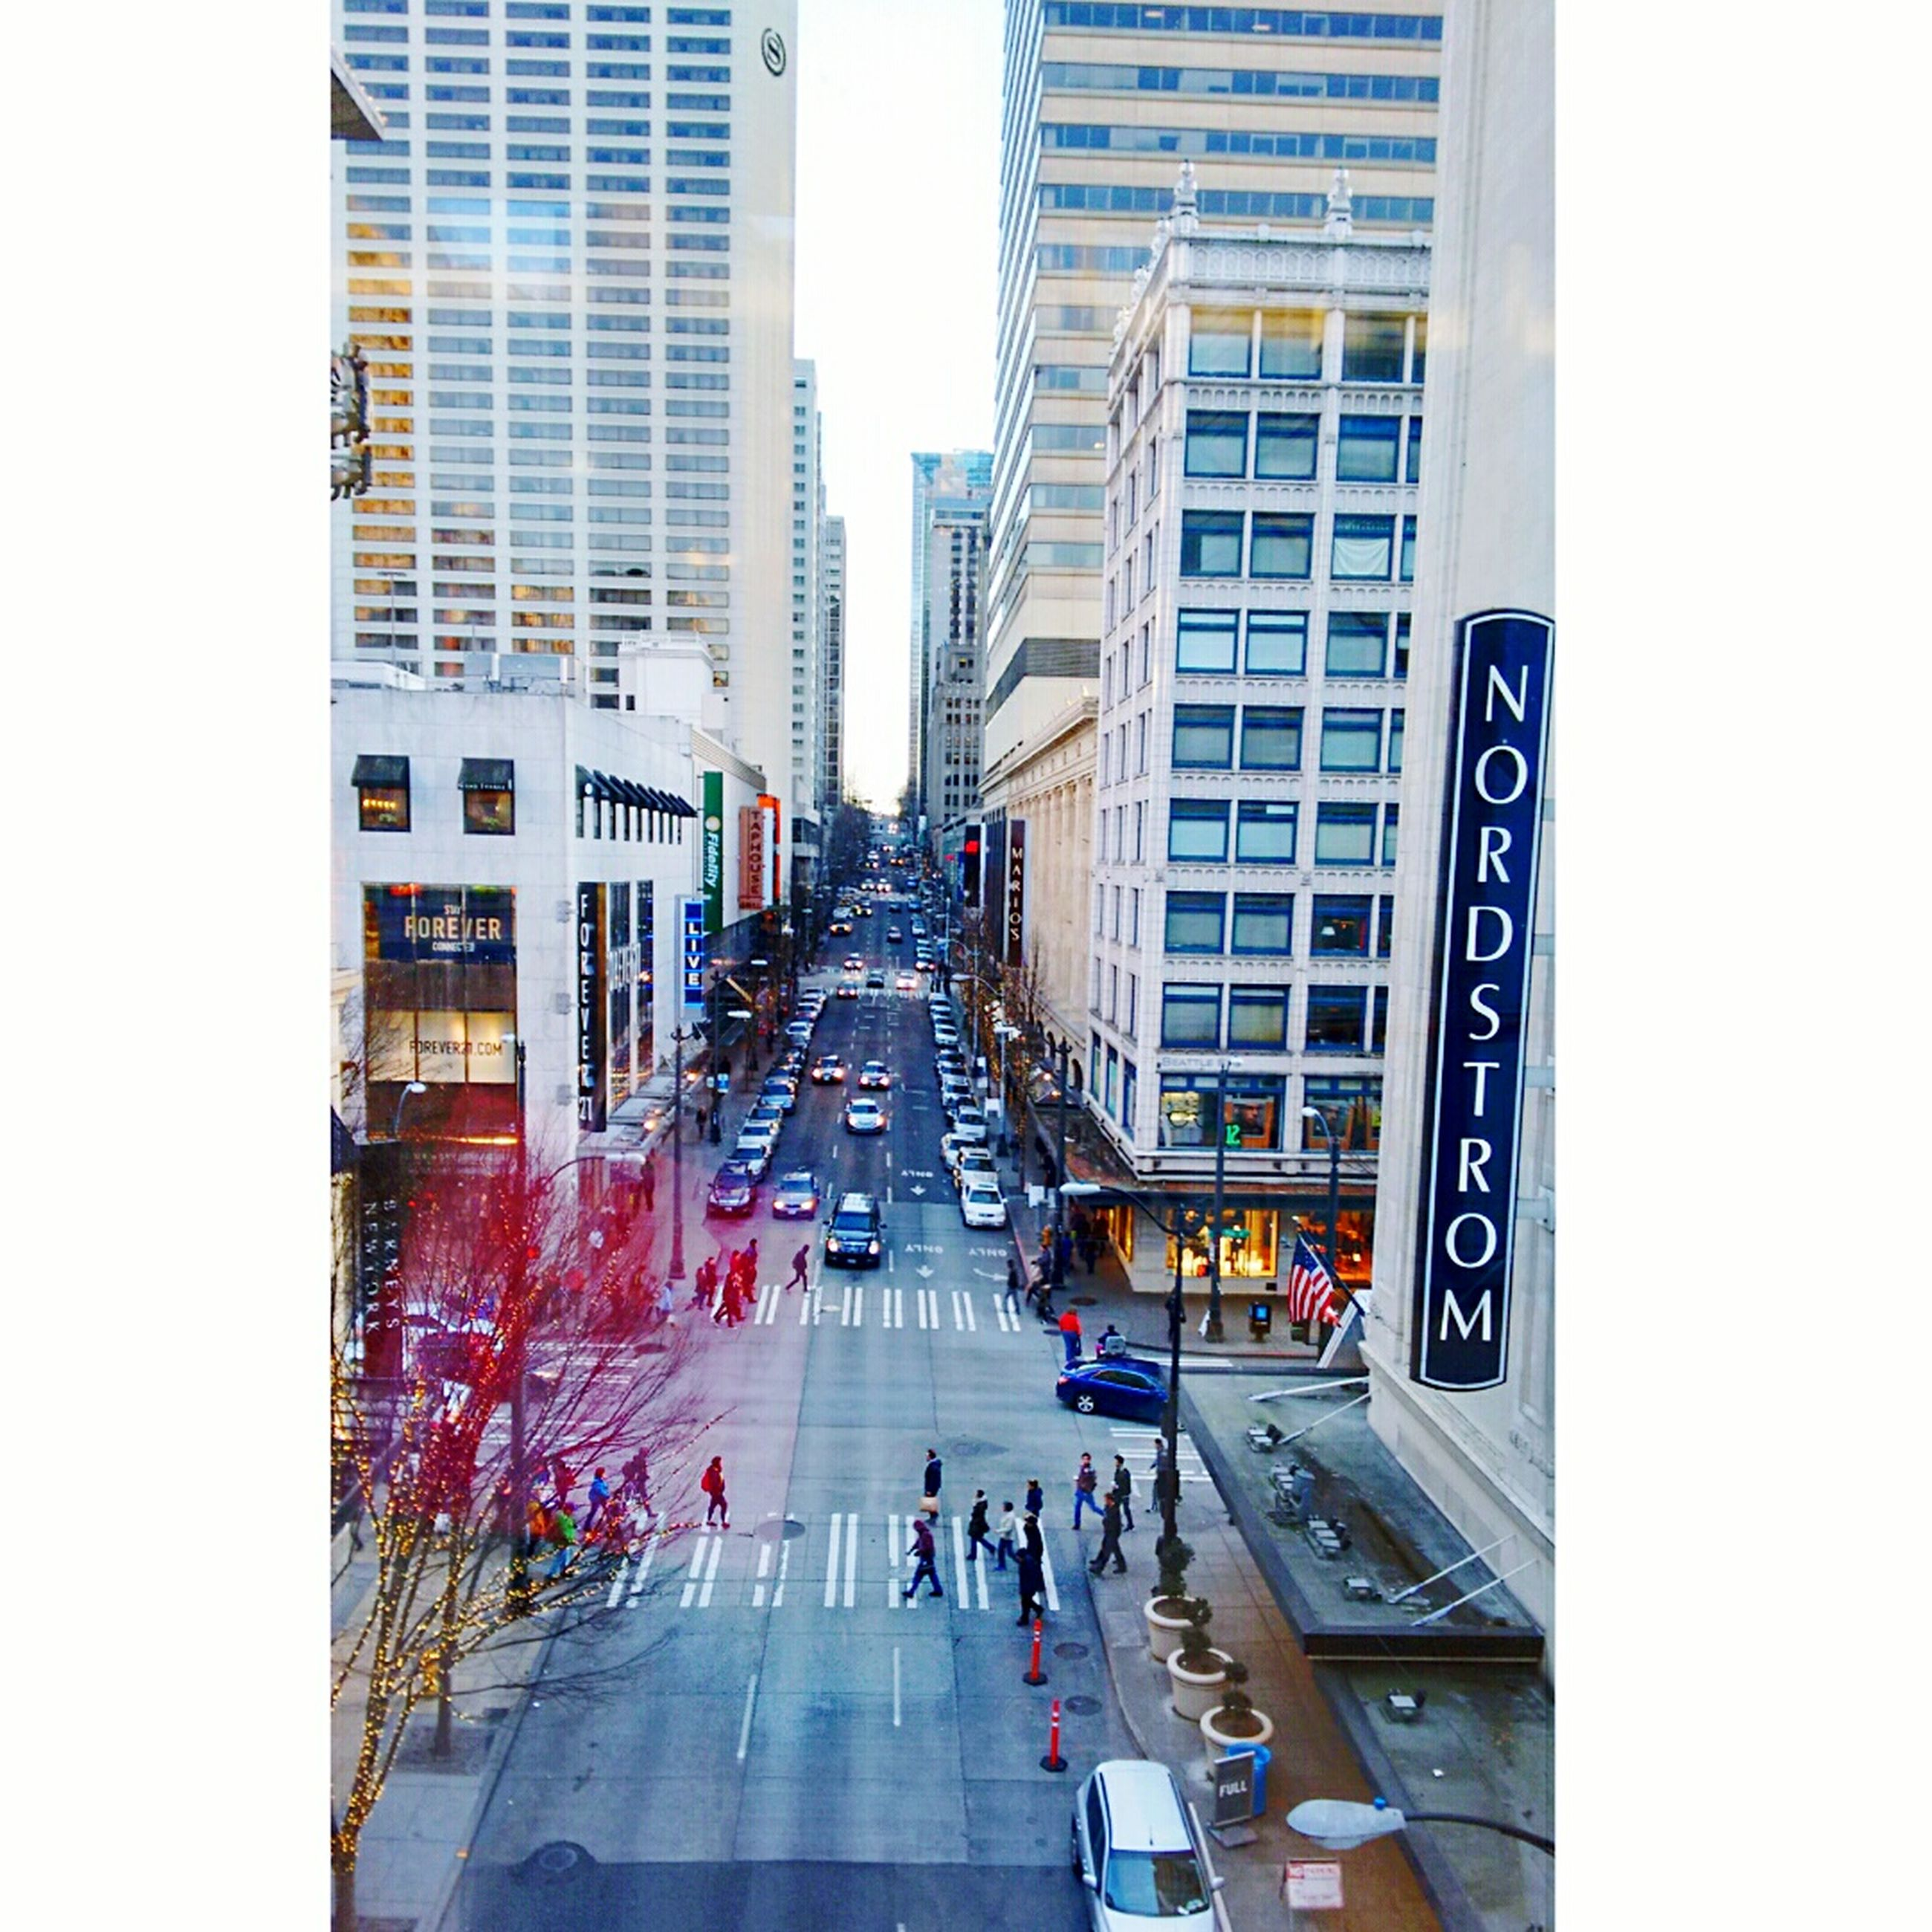 architecture, building exterior, built structure, city, city life, transportation, large group of people, street, men, city street, person, building, the way forward, walking, high angle view, lifestyles, land vehicle, car, skyscraper